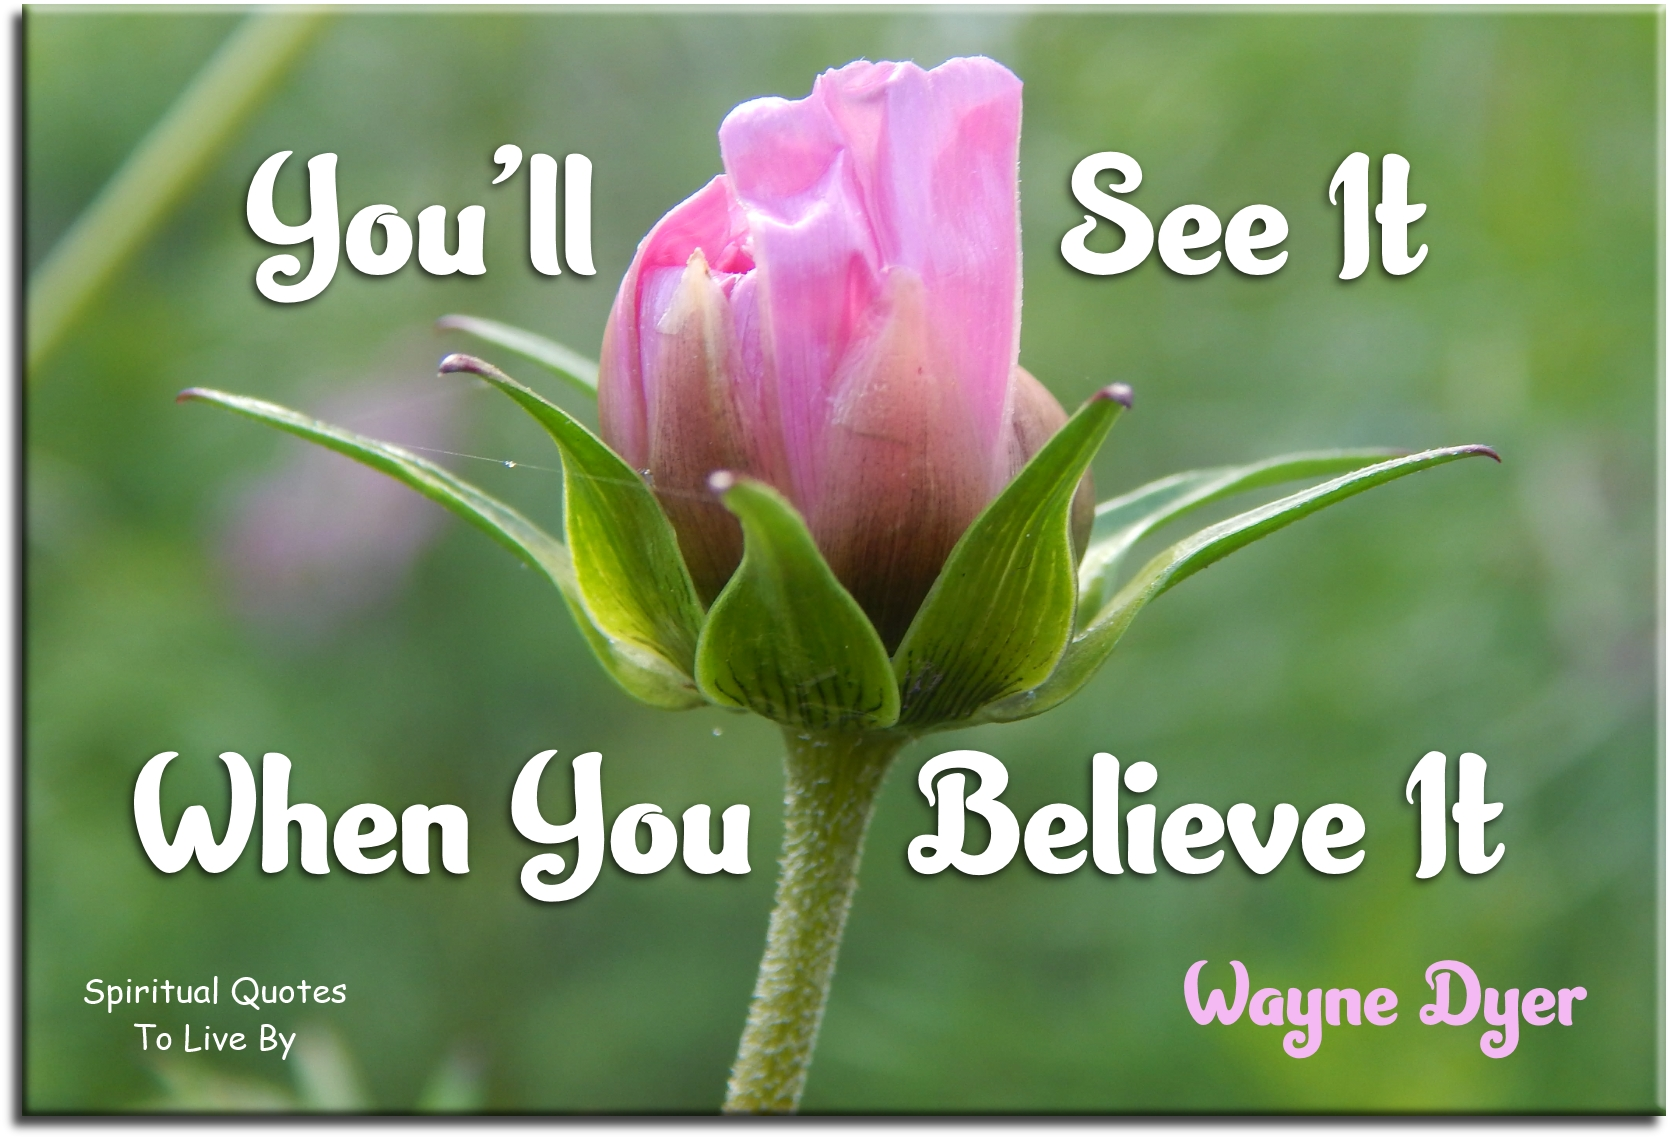 Wayne Dyer quote: You'll see it... when you believe it. Spiritual Quotes To Live By